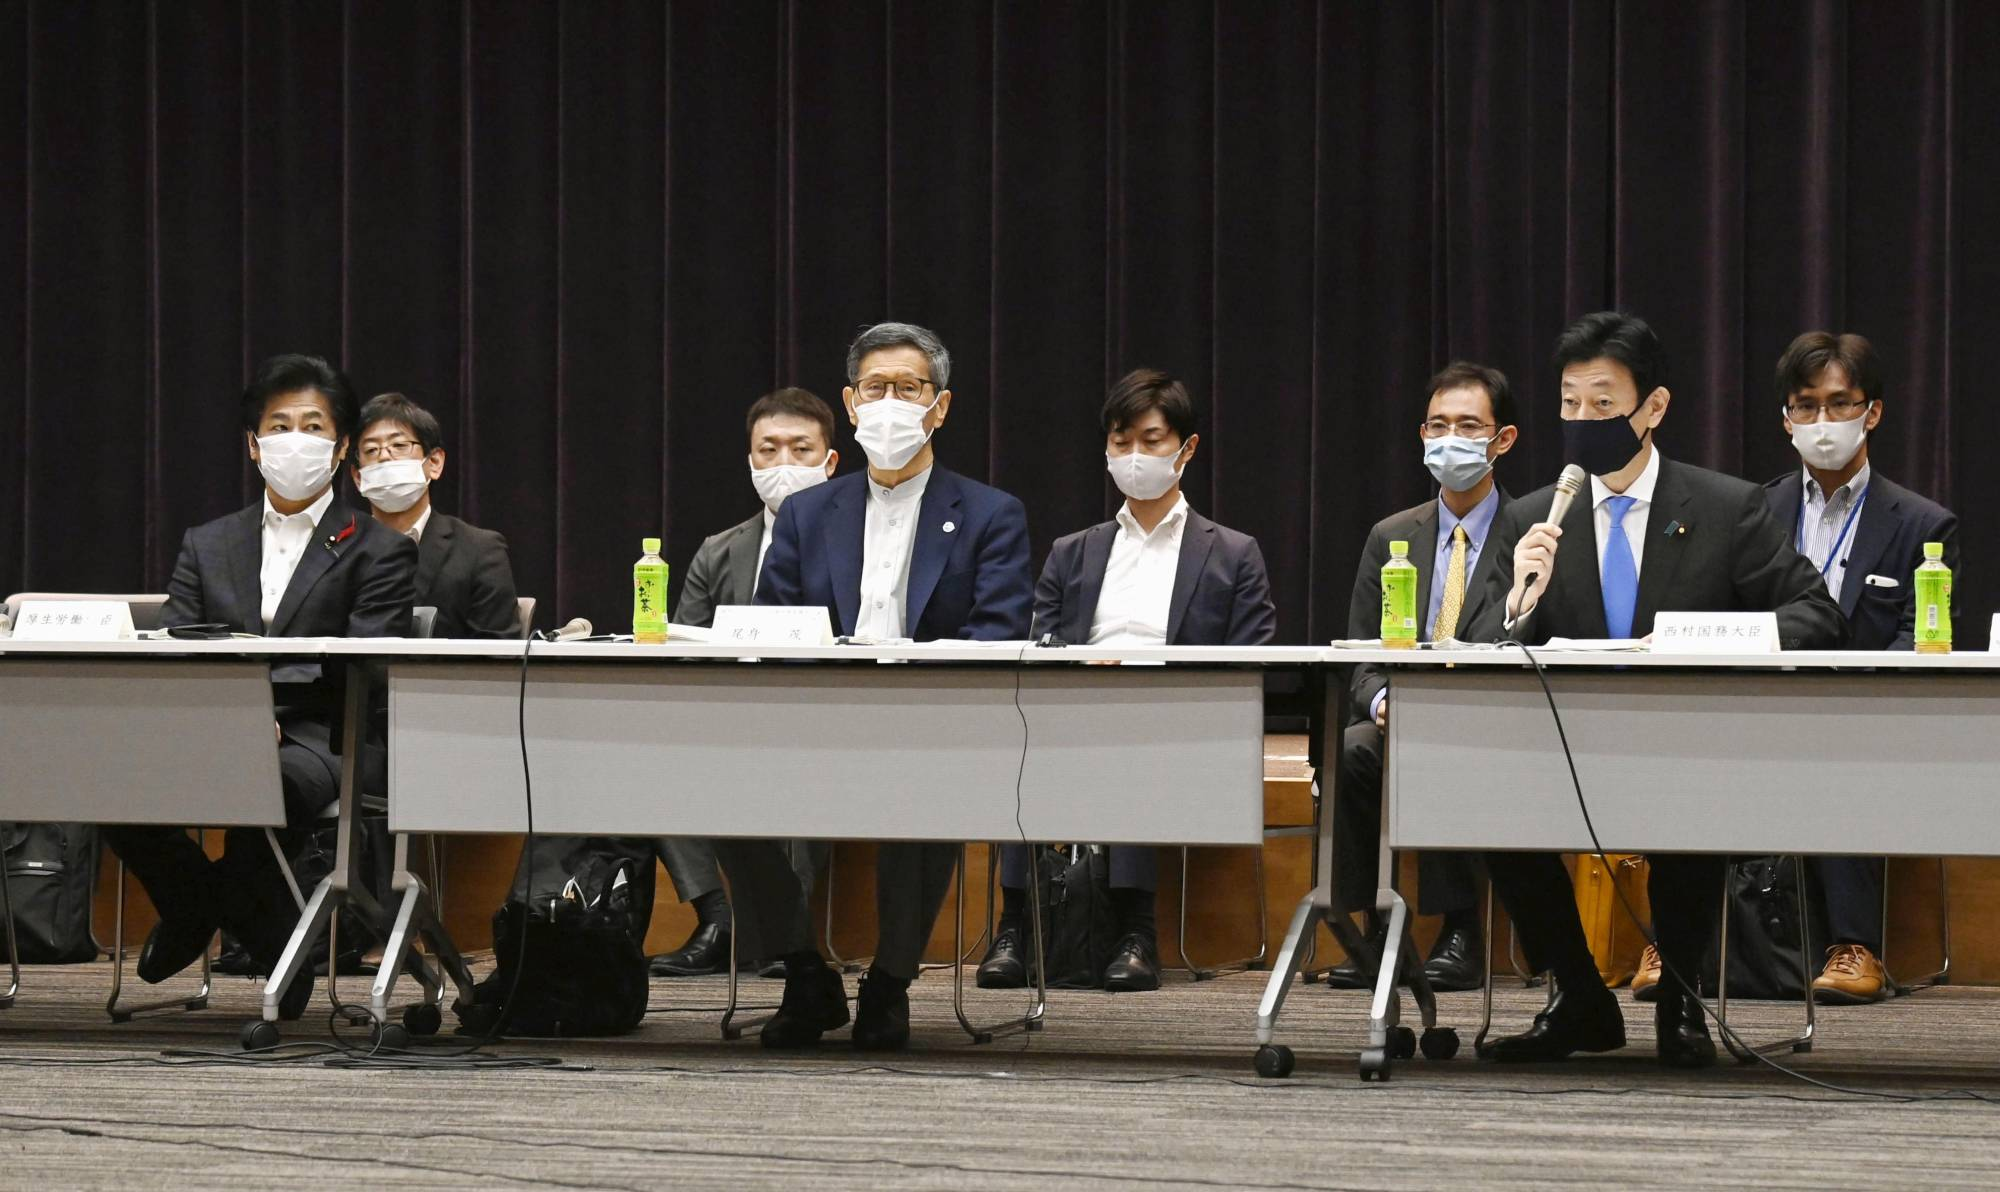 Shigeru Omi, who heads a government subcommittee on COVID-19 measures, and economic revitalization minister Yasutoshi Nishimura attend a meeting of the government's virus task force on Friday. | KYODO